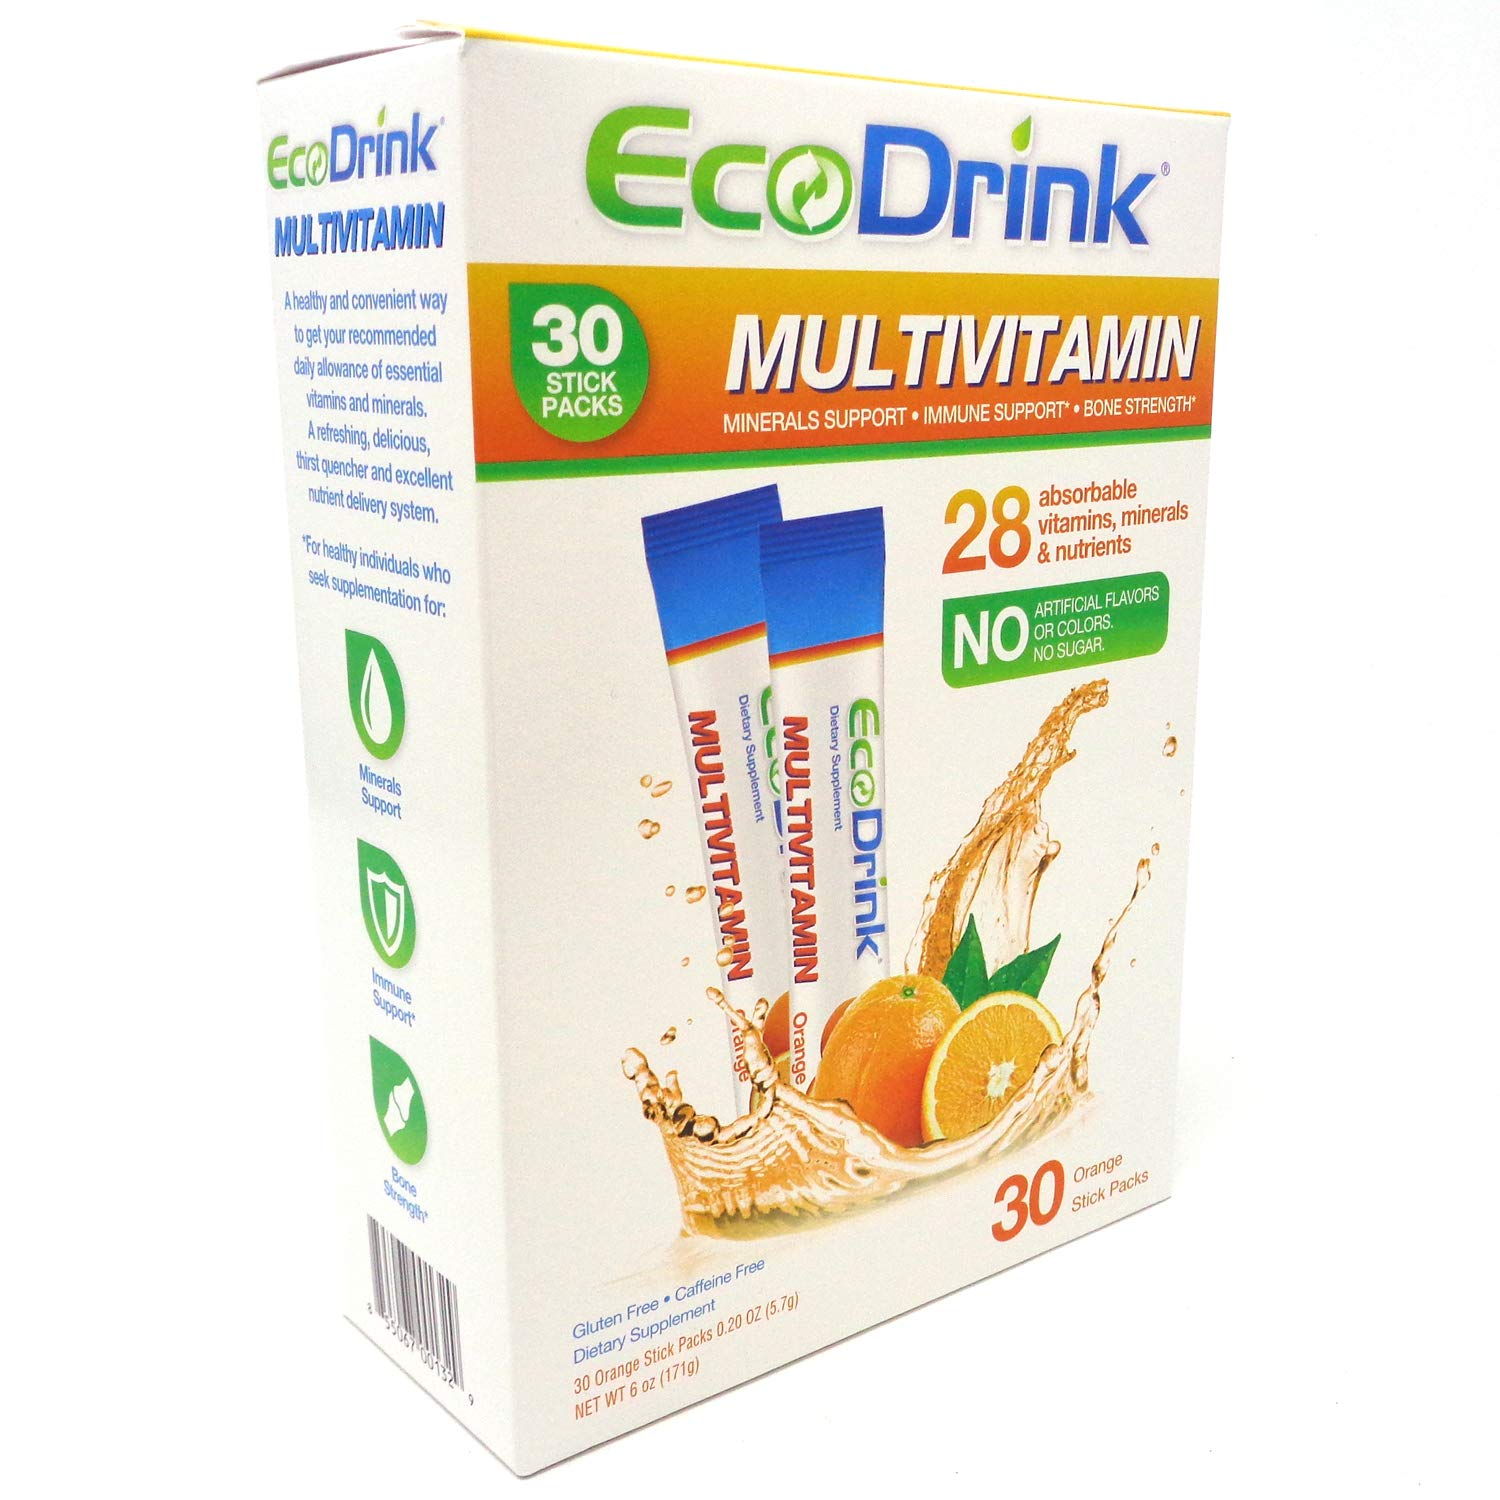 EcoDrink Complete Multivitamin Minerals Drink Mix – Orange – 30 Refill Pack, No Bottle